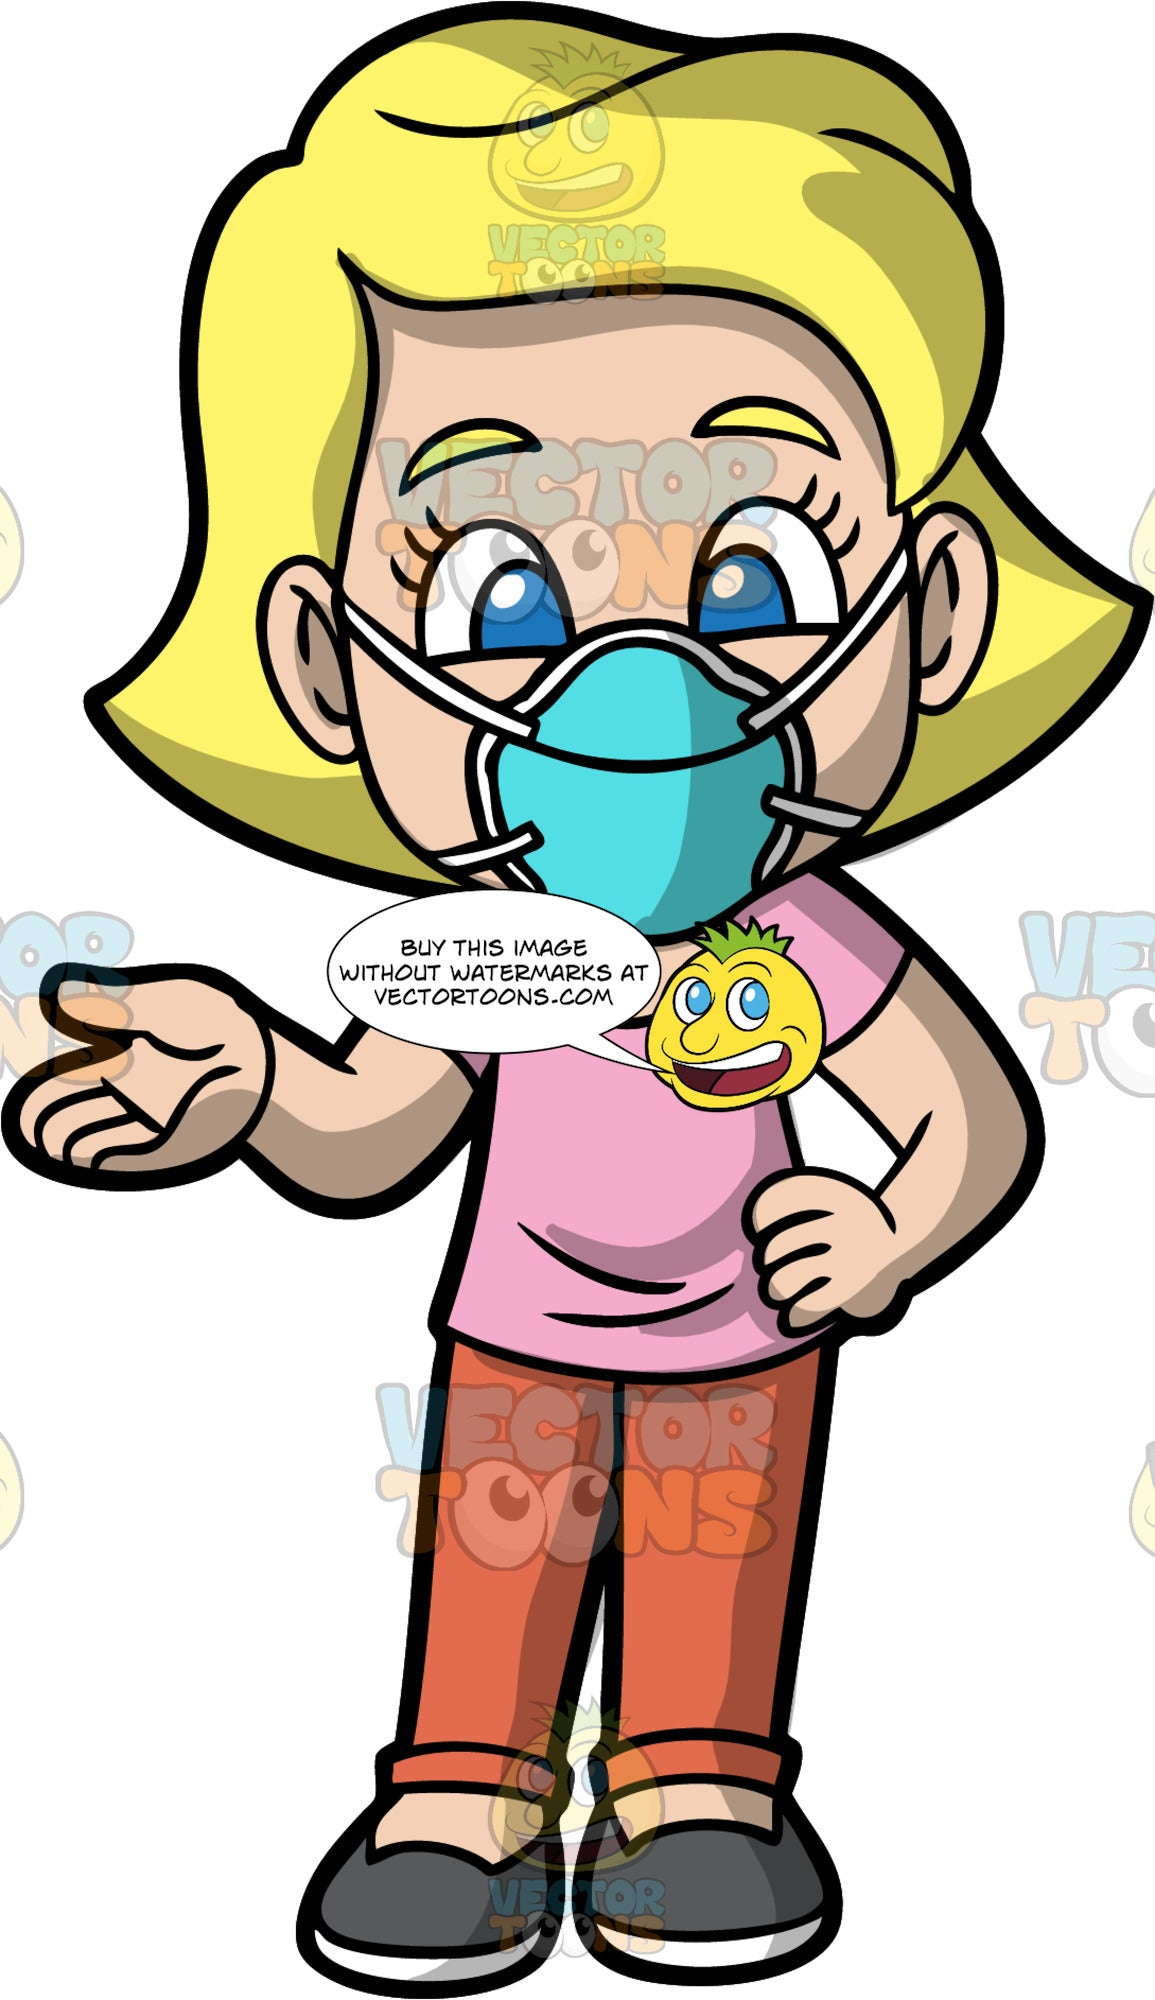 Young Mary Wearing A Blue Face Mask. A blond girl wearing burnt orange pants, a pink t-shirt, dark gray shoes, and a blue protective face mask, standing with one hand on her hip and the other out to the side